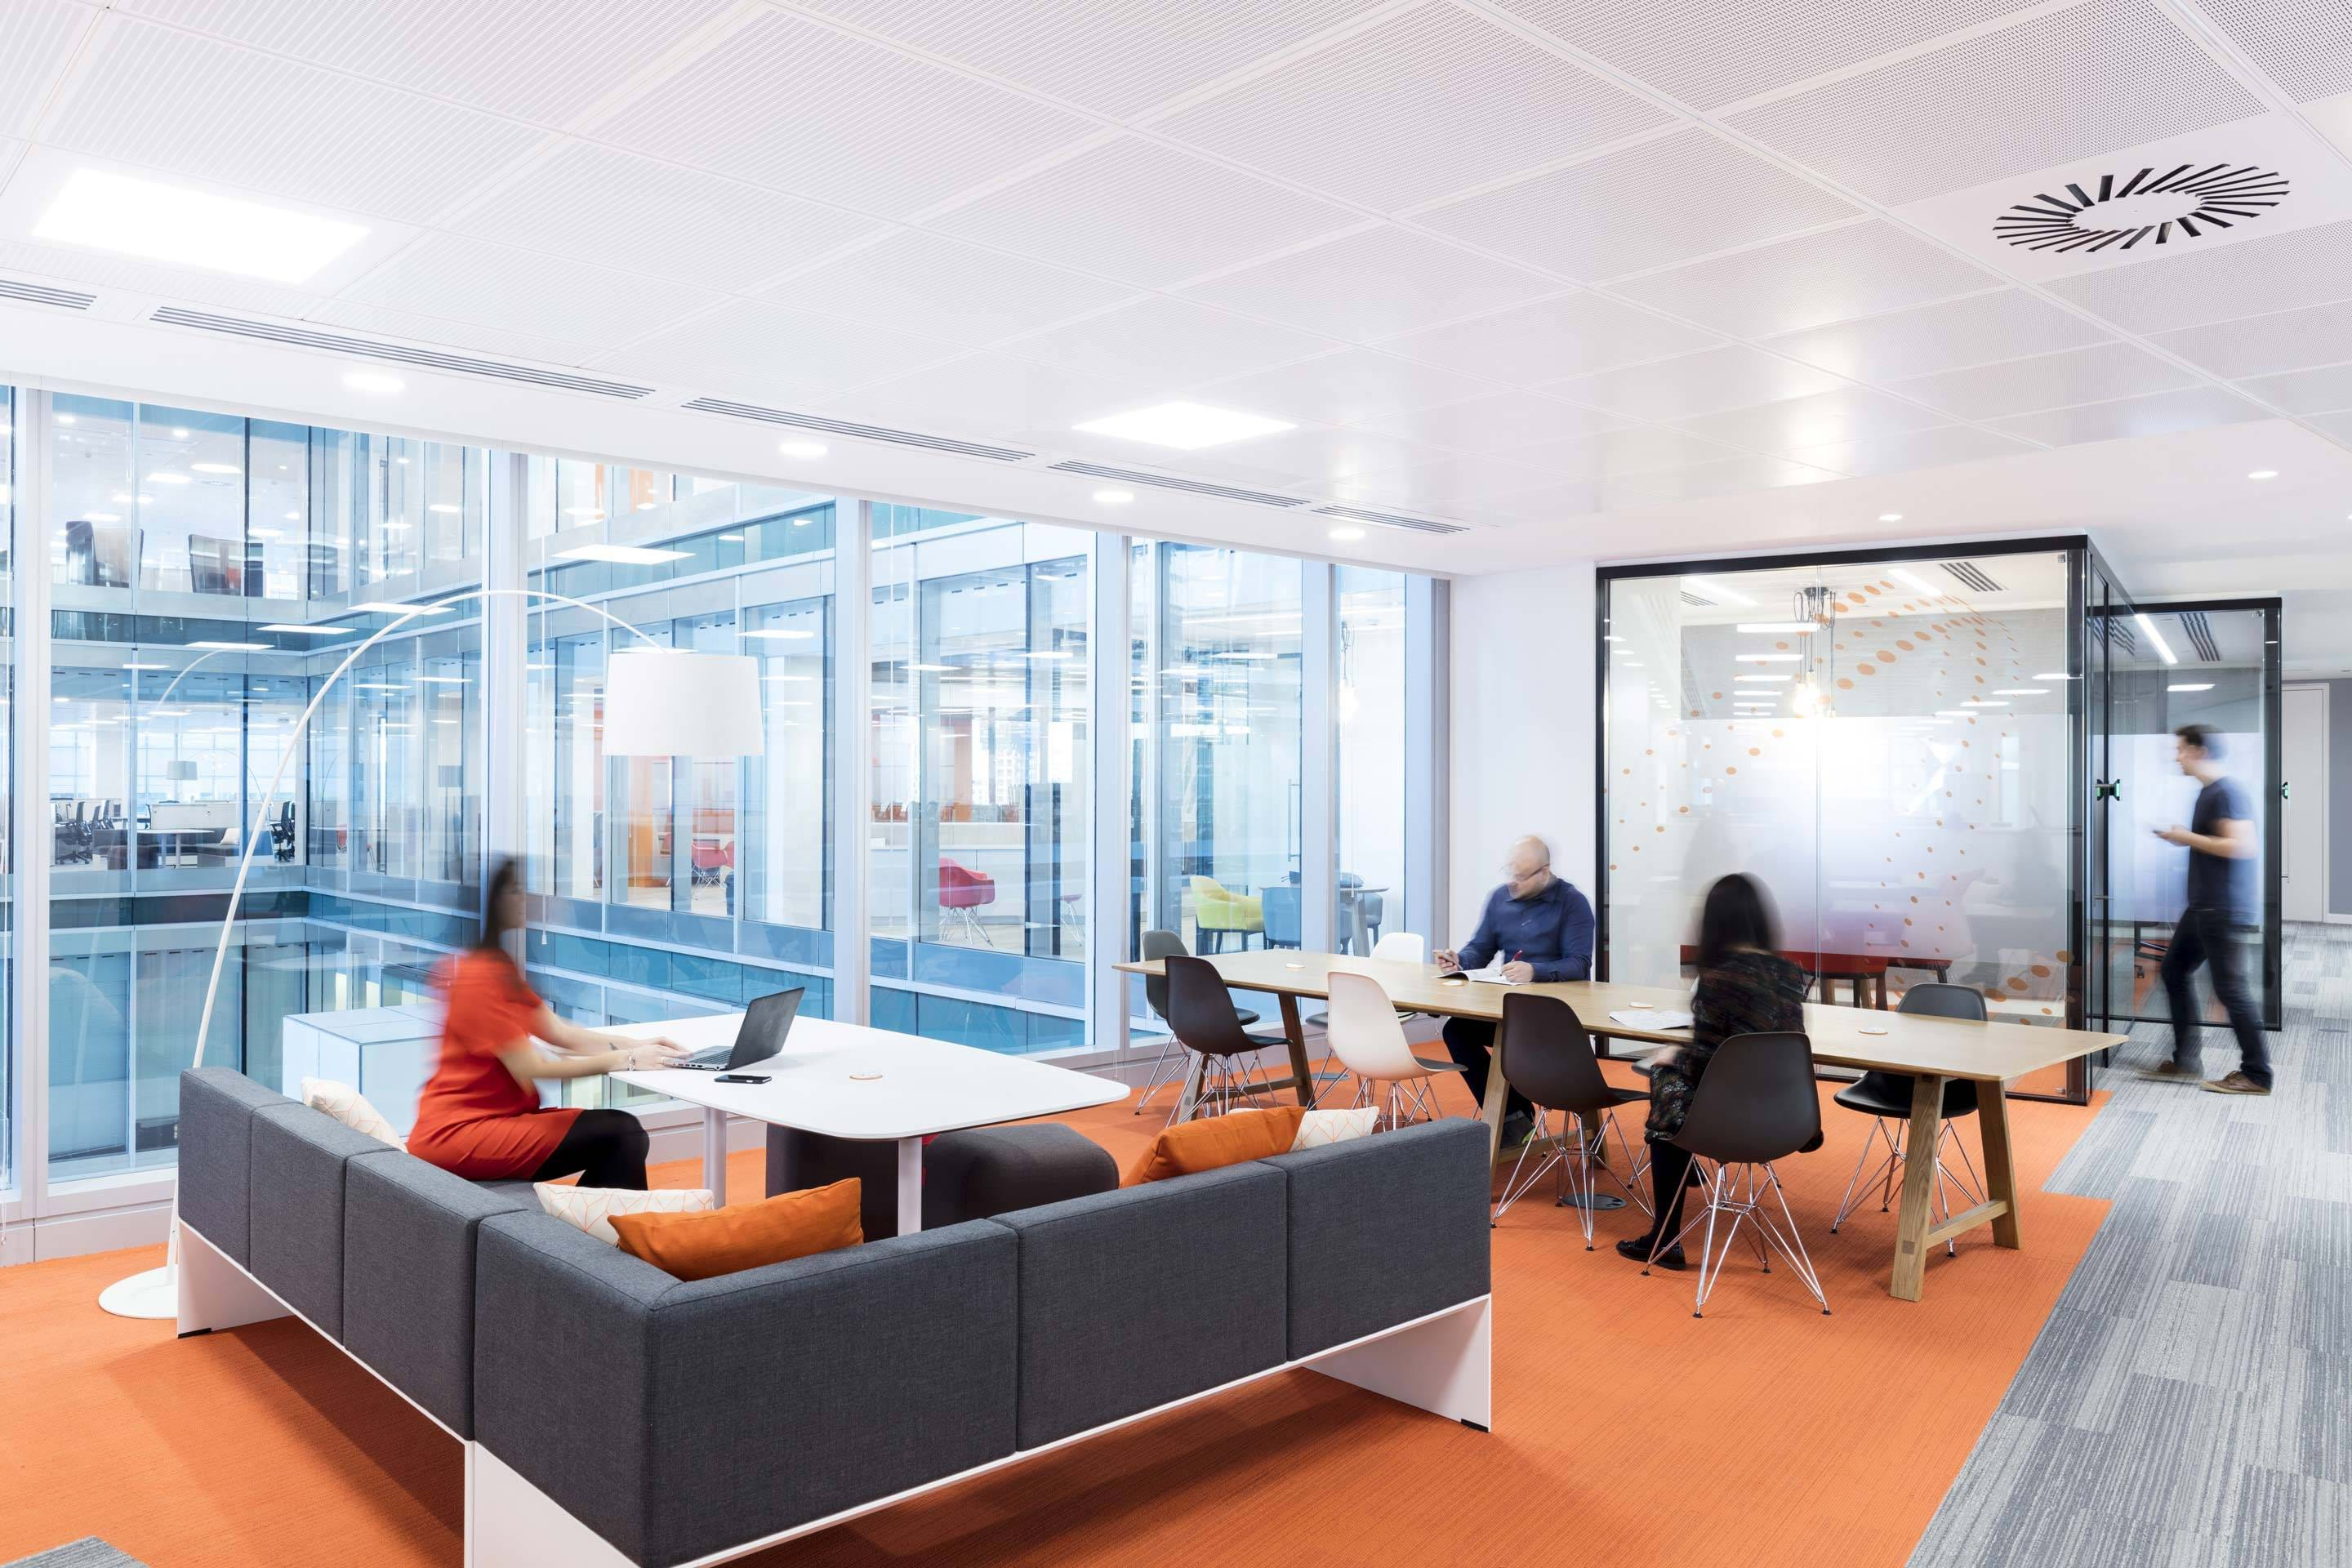 Thomson Reuters – Breakout spaces